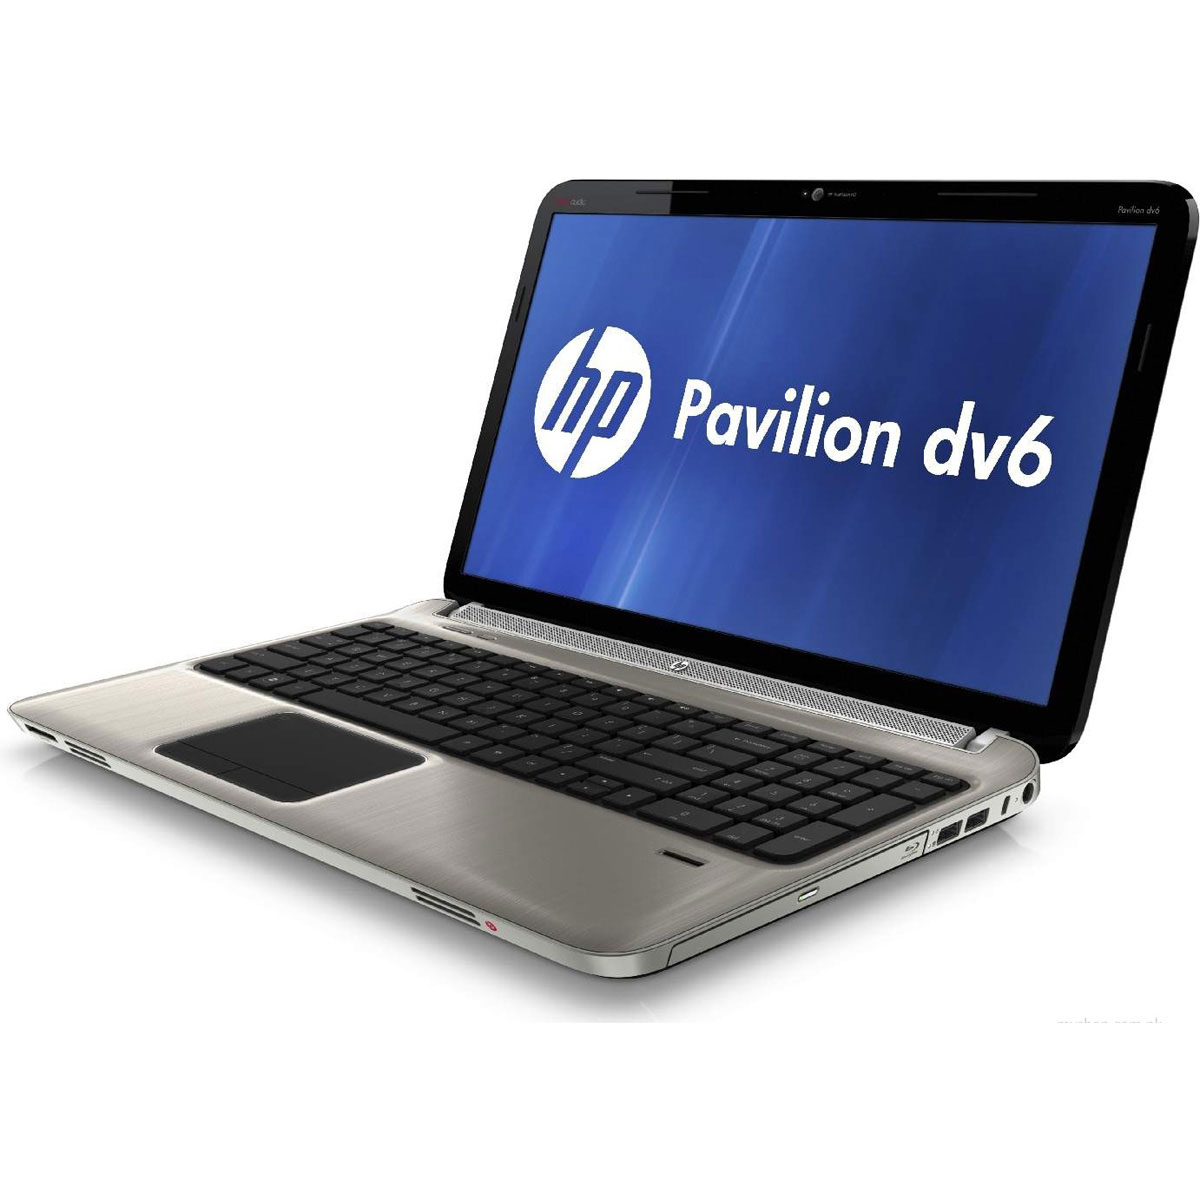 hp pavilion dv6 6190 laptop price. Black Bedroom Furniture Sets. Home Design Ideas